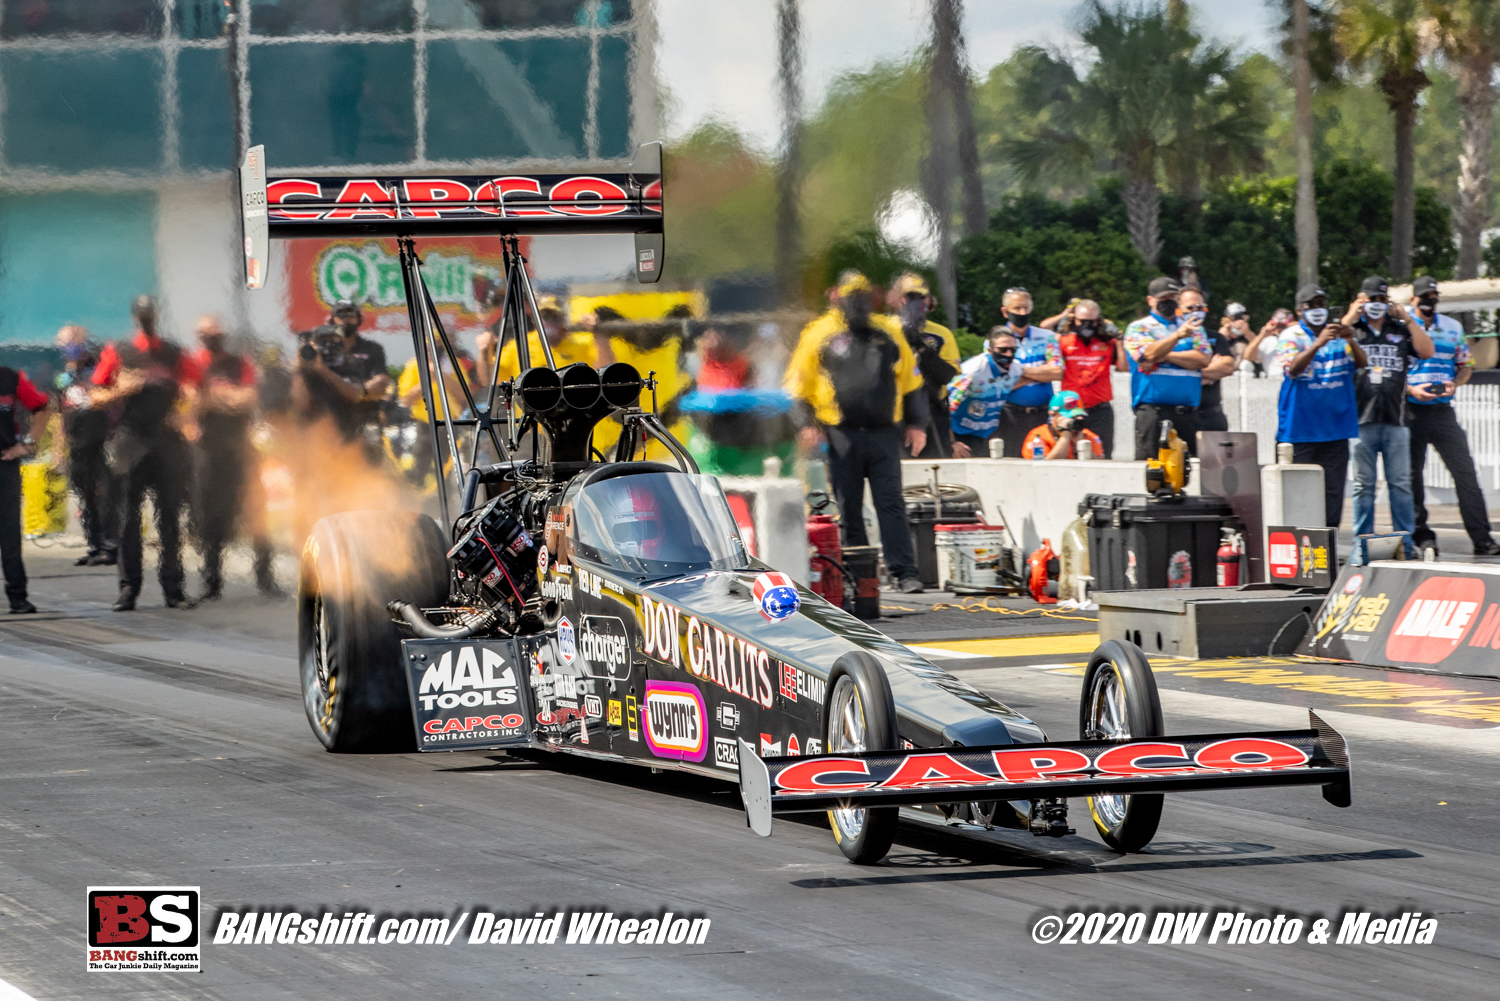 Speed In The Swamp: Top Fuel and Funny Car Action Photos From The 2020 NHRA Gatornationals